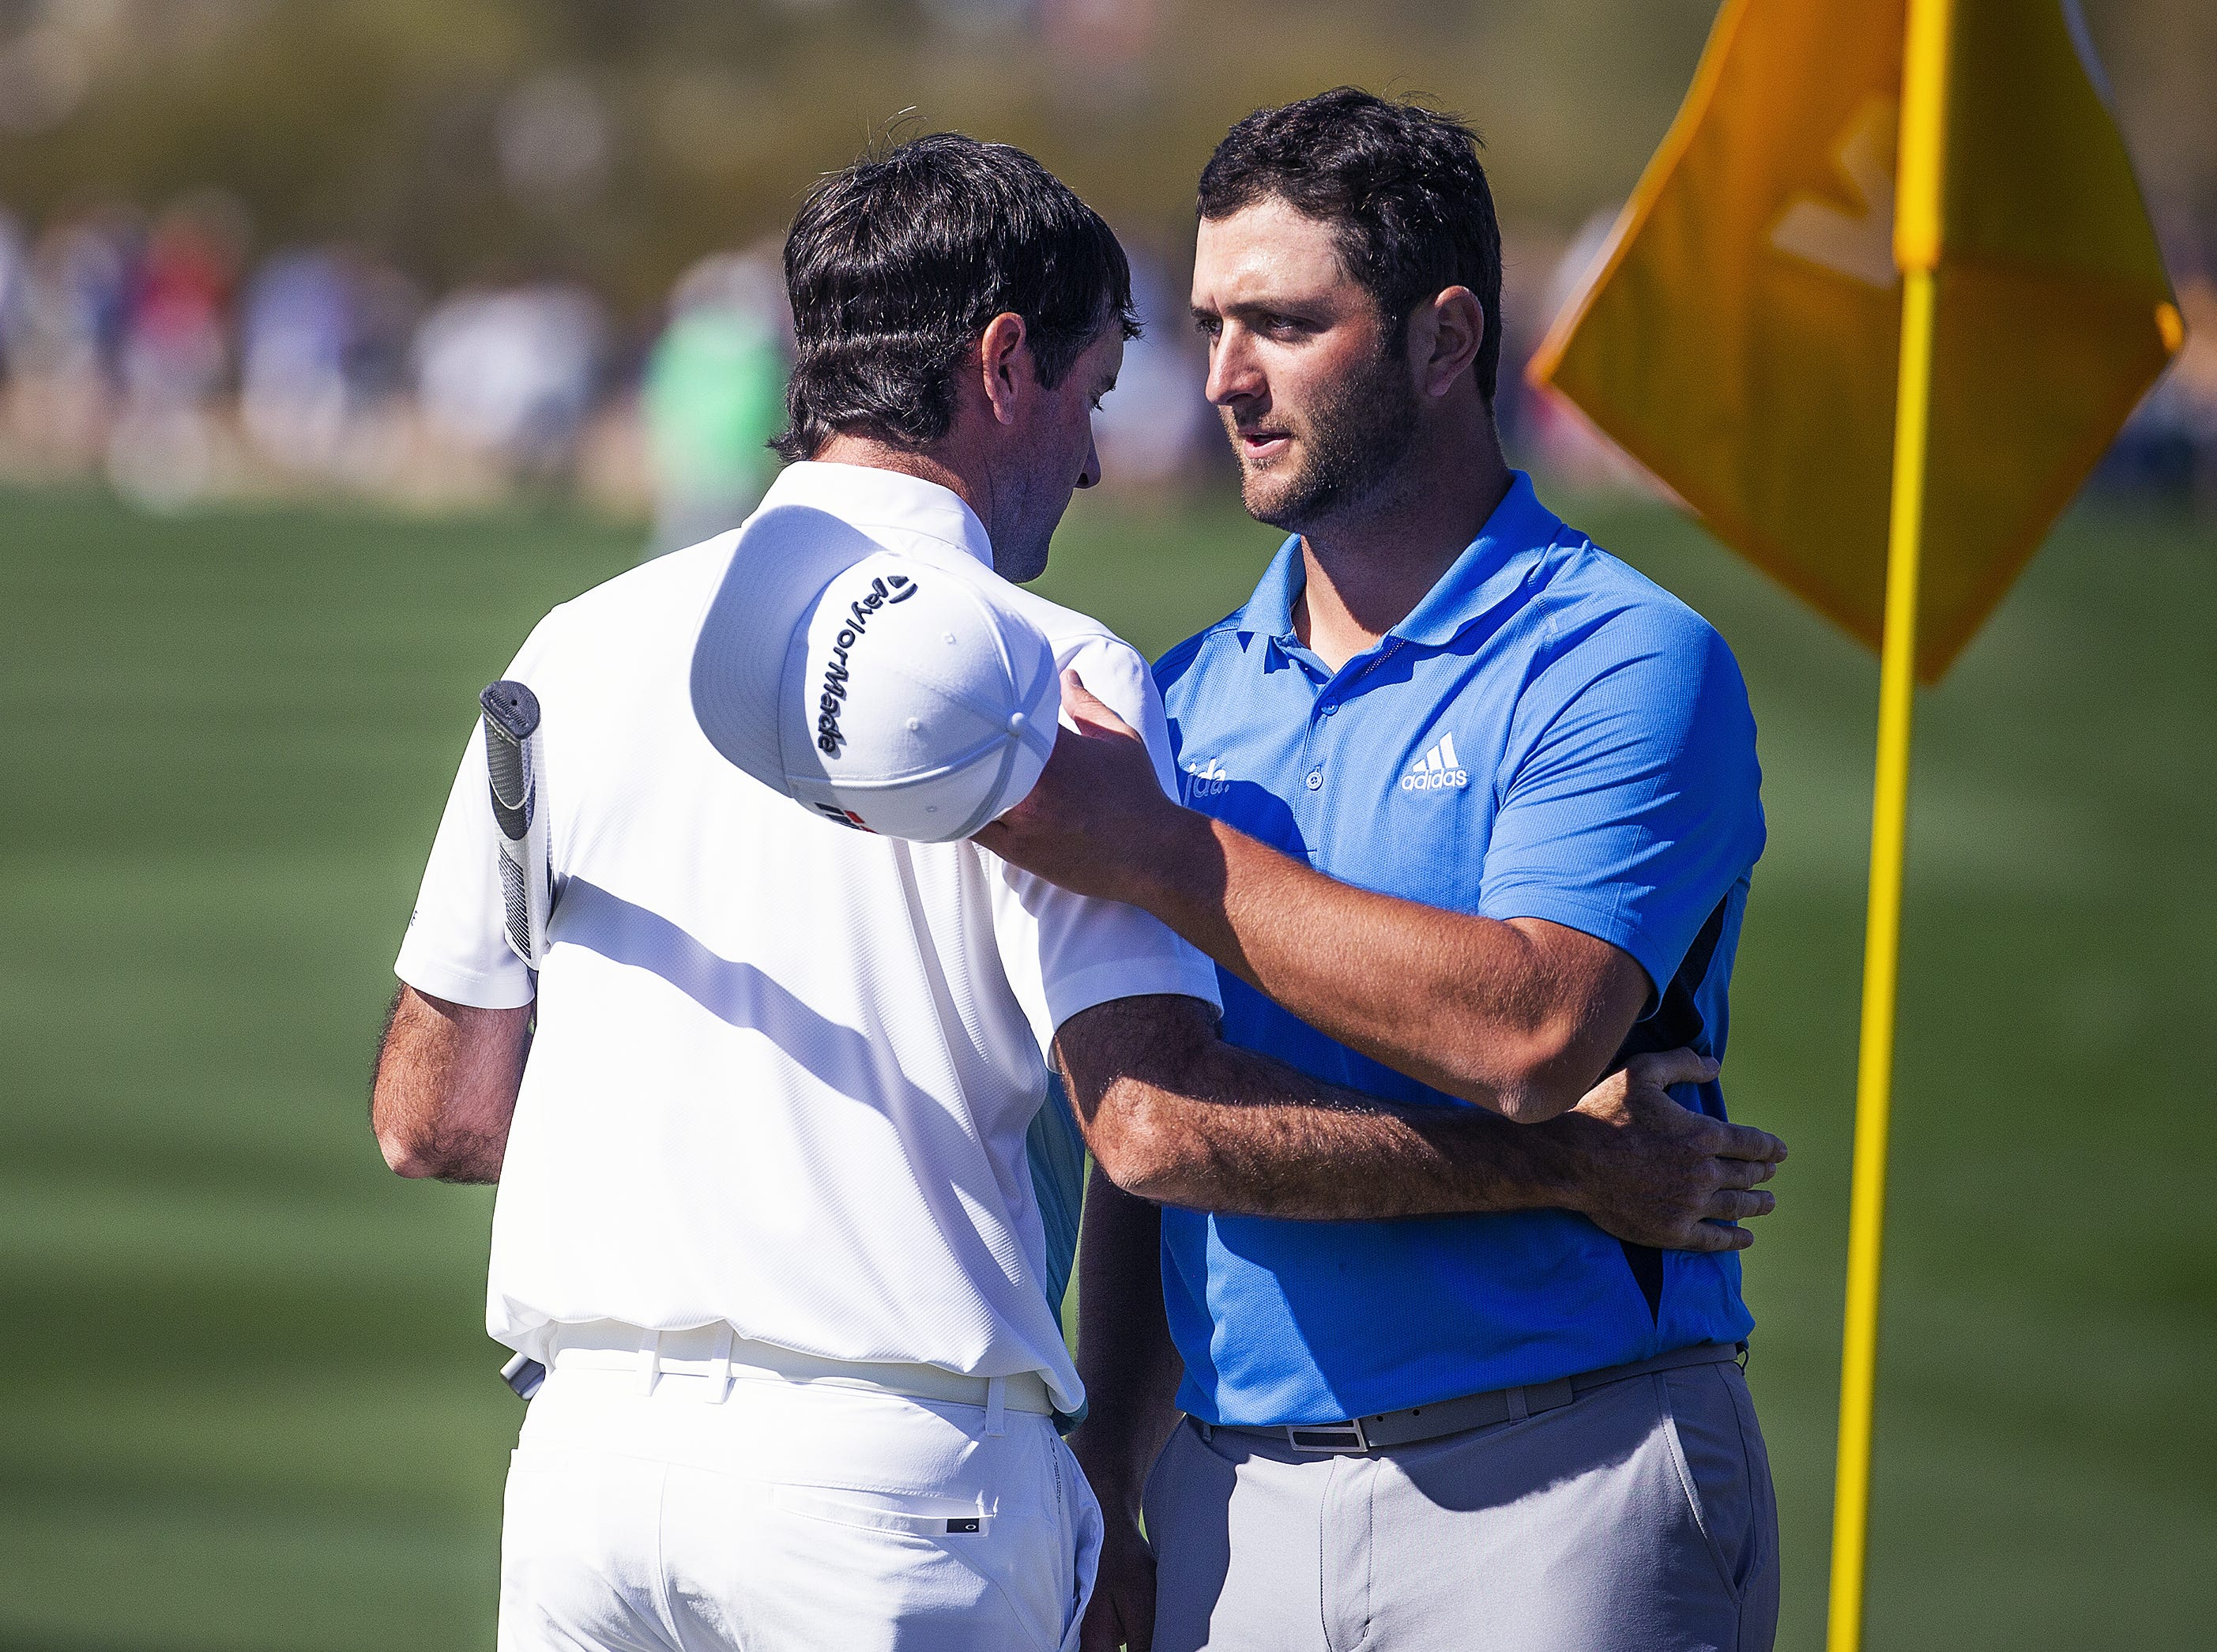 Bubba Watson, left, and Jon Rahm embrace at the end of their round on the 9th hole during the second round of the Waste Management Phoenix Open at the TPC Scottsdale, Friday, February 1, 2019.  After Watson putted and finished his round he was in second place at 9 under par.